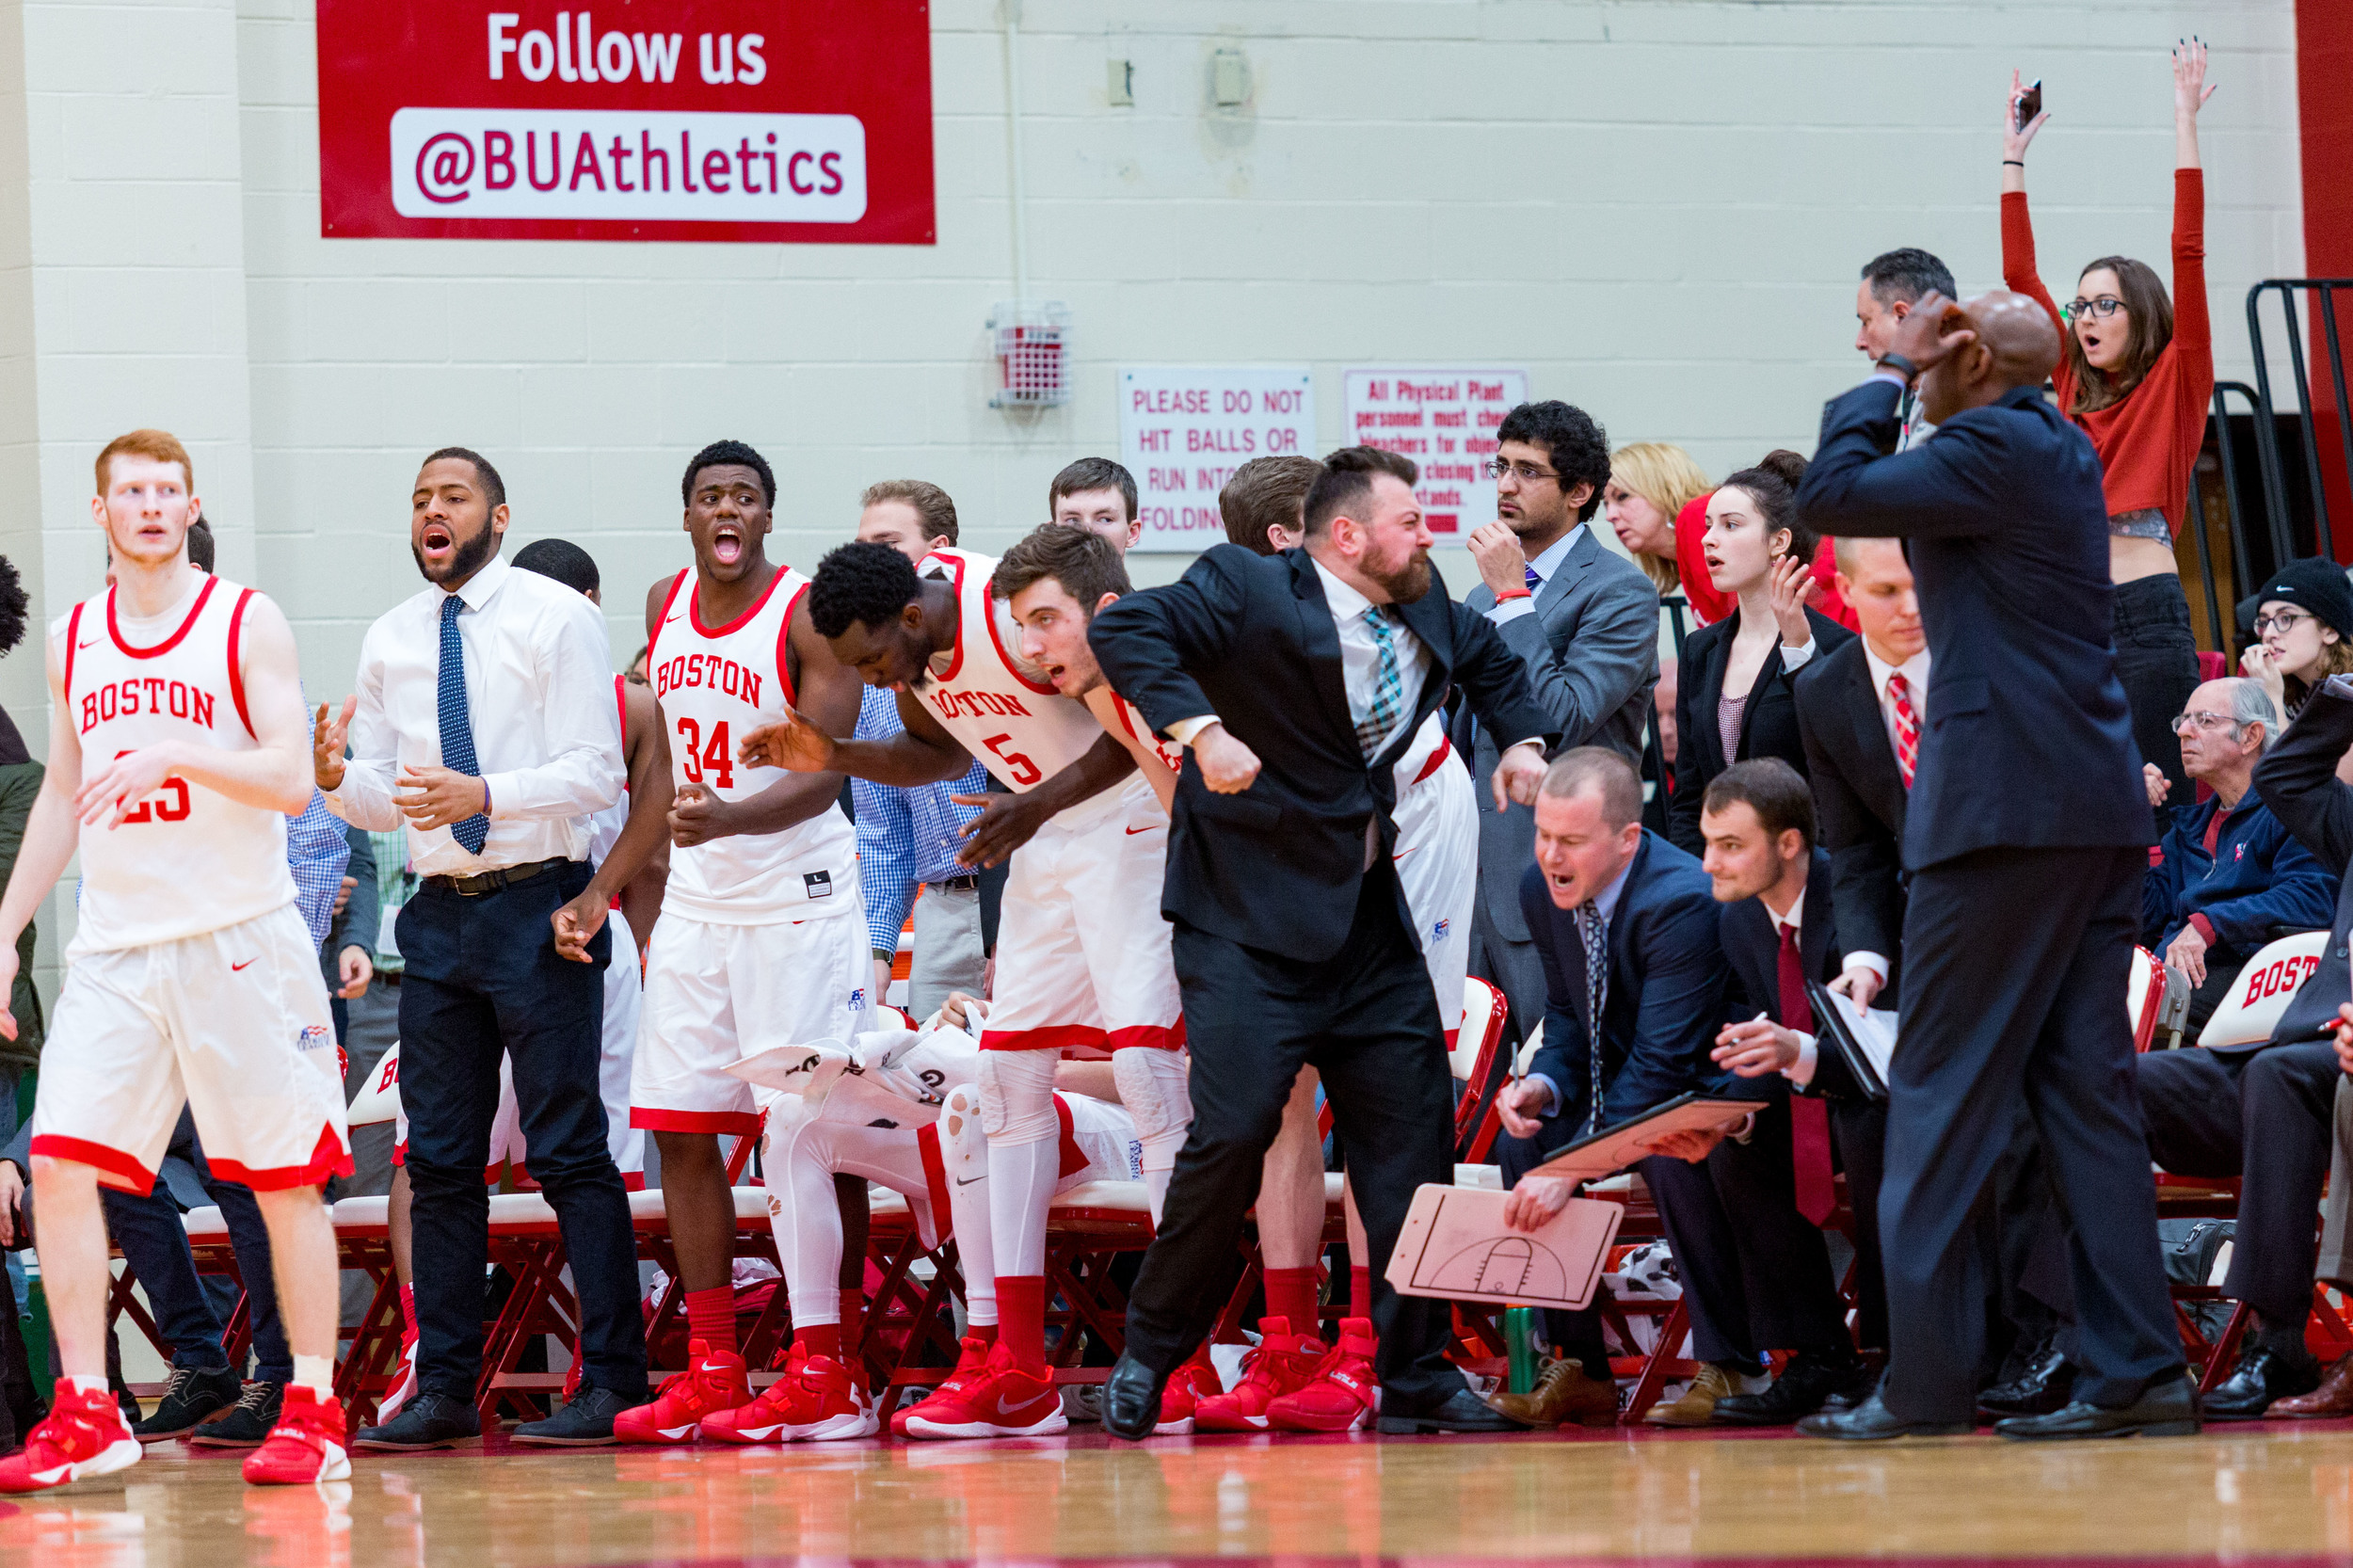 Boston University's bench can't believe they turned the ball over at the end of a tight game with Bucknell.